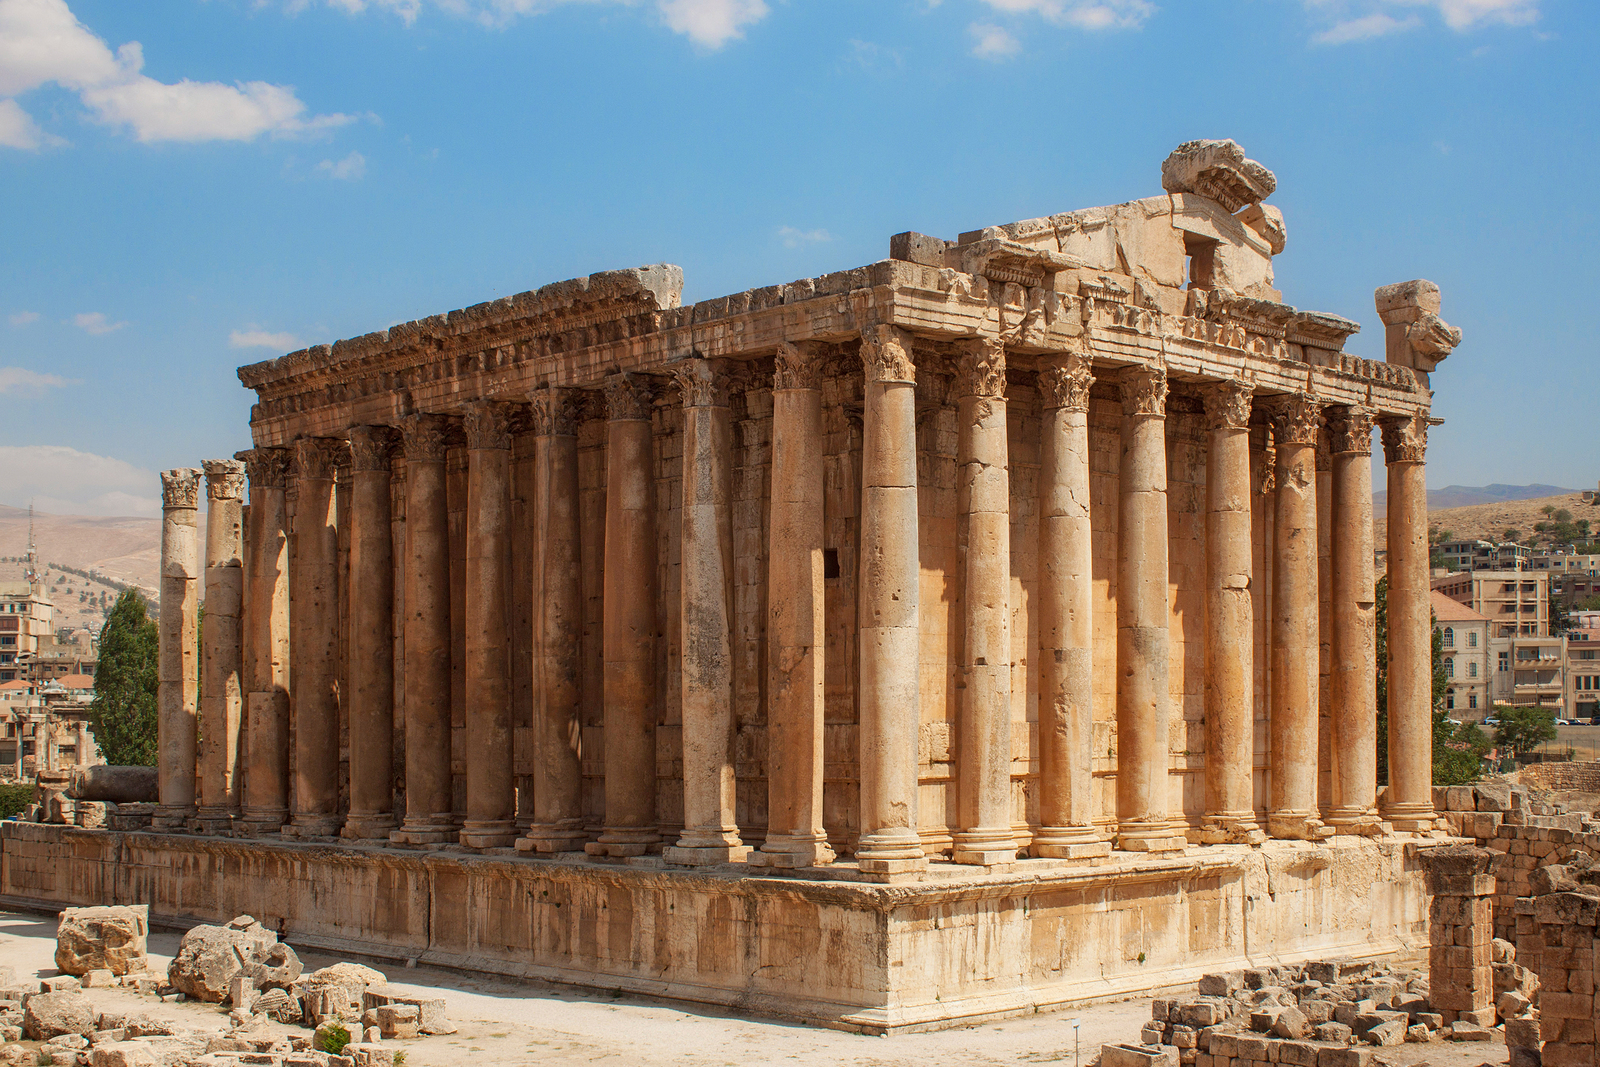 Lebanon's impressive Temple of Bacchus, built by Antoninus in the 2nd century AD, is one of the most significant Roman archaeological sites in the Middle East.